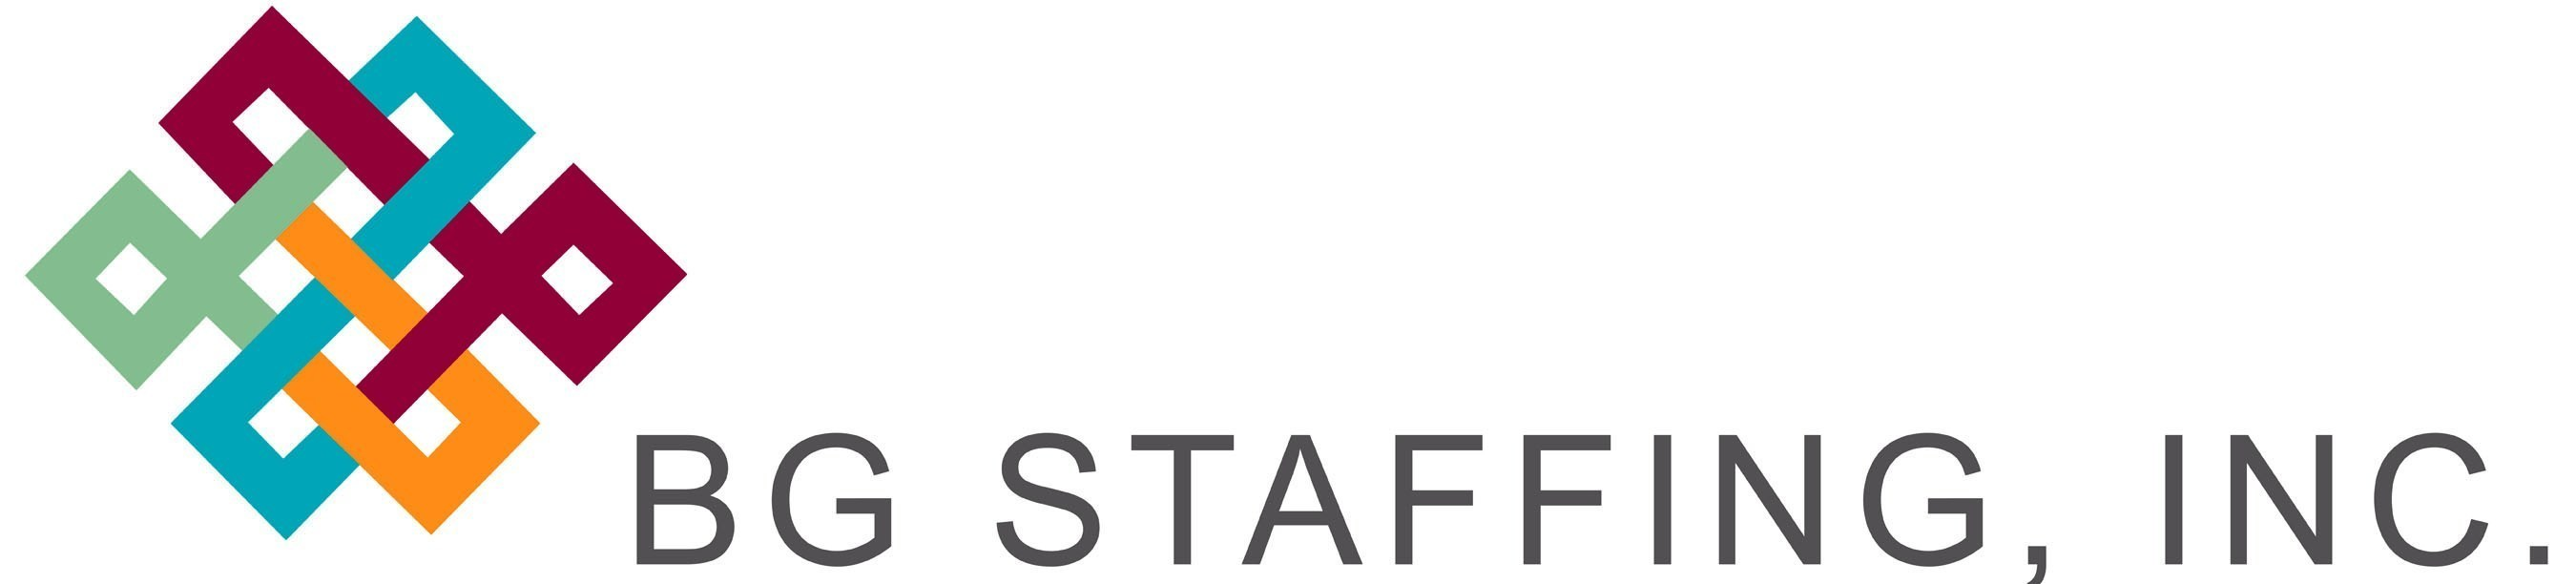 BG Staffing, Inc. Announces Q3 2015 Financial Results